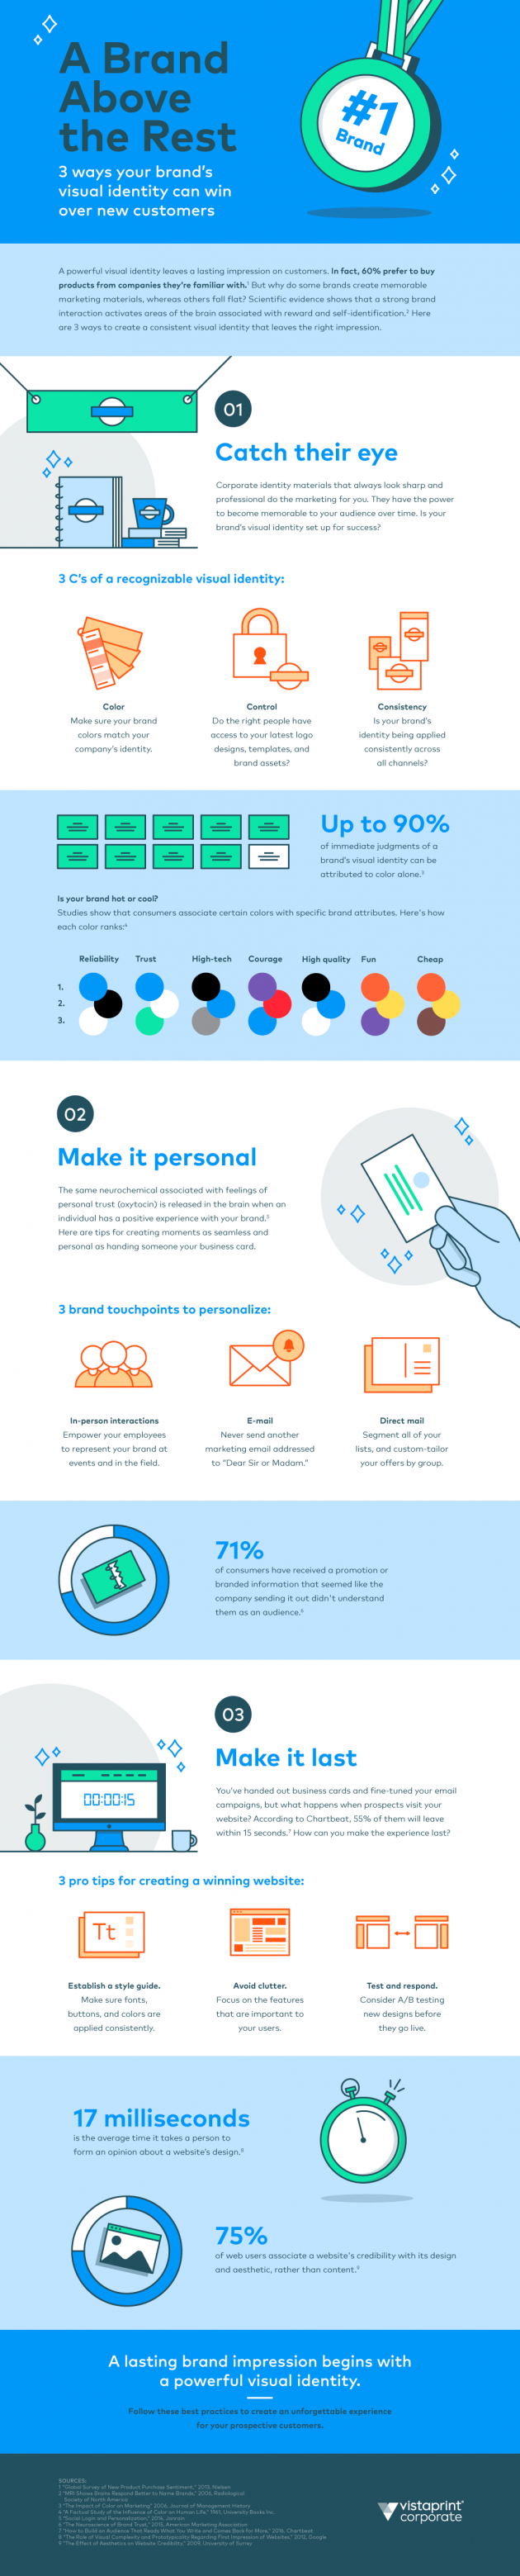 3 Tips for Creating a Memorable Visual Brand Identity - #Infographic